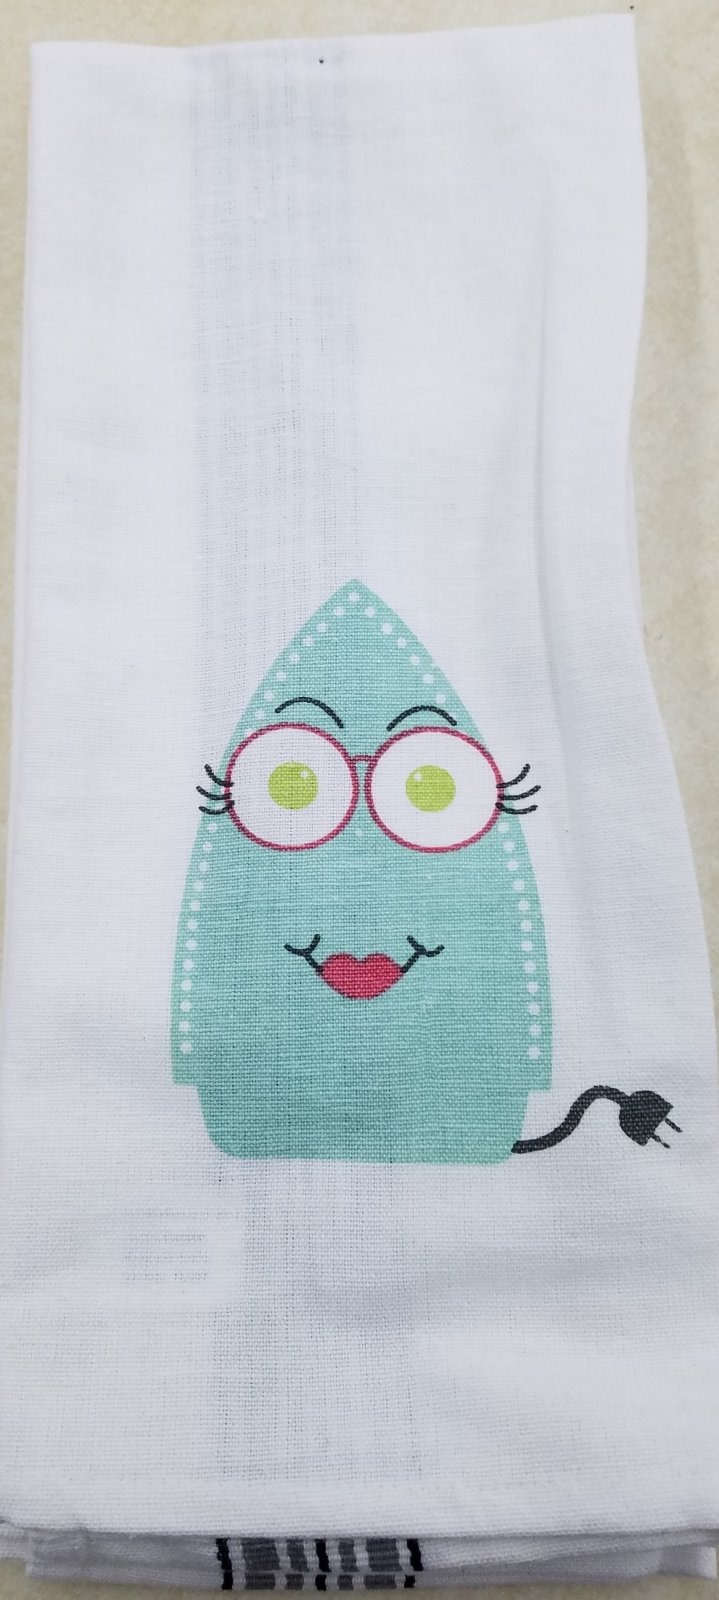 Sew Much Attitude Towels Iron